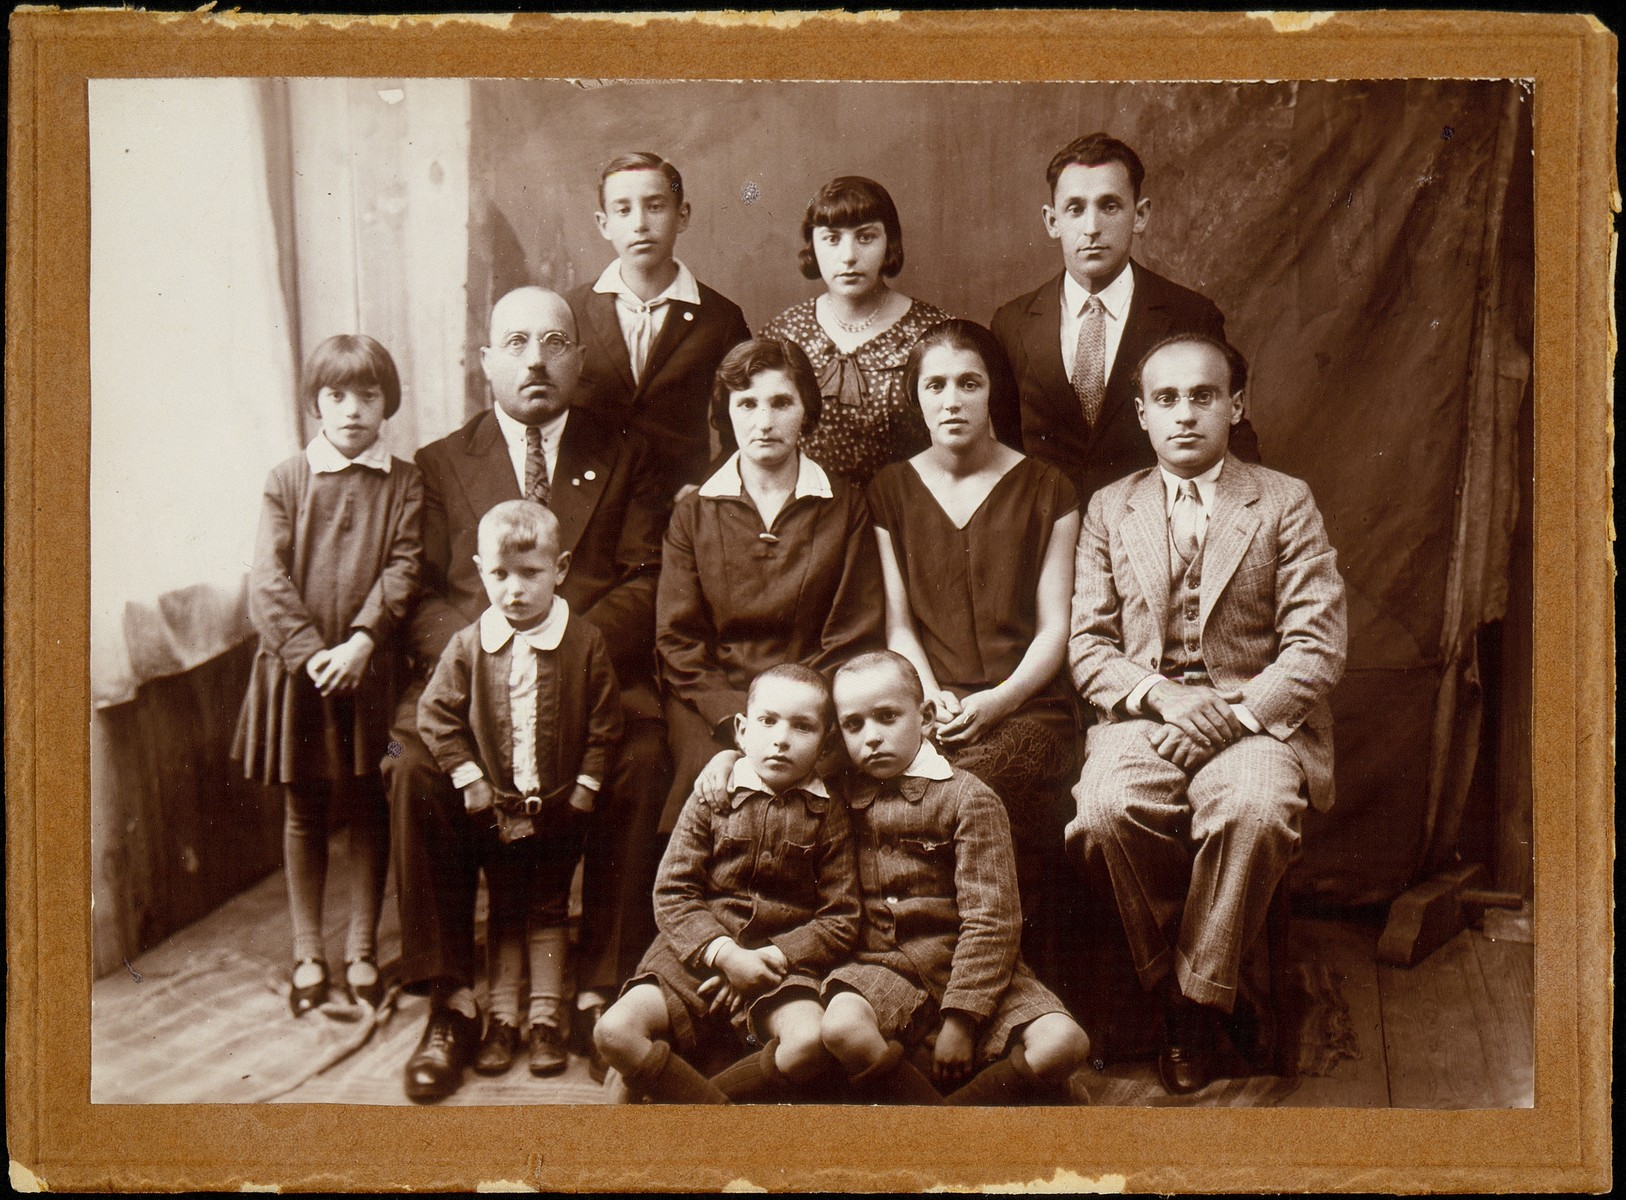 The family of the school principal Moshe Yaakov Botwinik.  (top row, right to left) Layzer, a relative; daughter Fania; and son Leibke;  (middle row, right to left) two  relatives named Rakow; Shoshana and Moshe Yaakov.  Standing in front of his father is the youngest son, Avremele; next to him is a daughter Zipporah.  Sitting on the floor are sons Hillel (right) and Yitzhak.